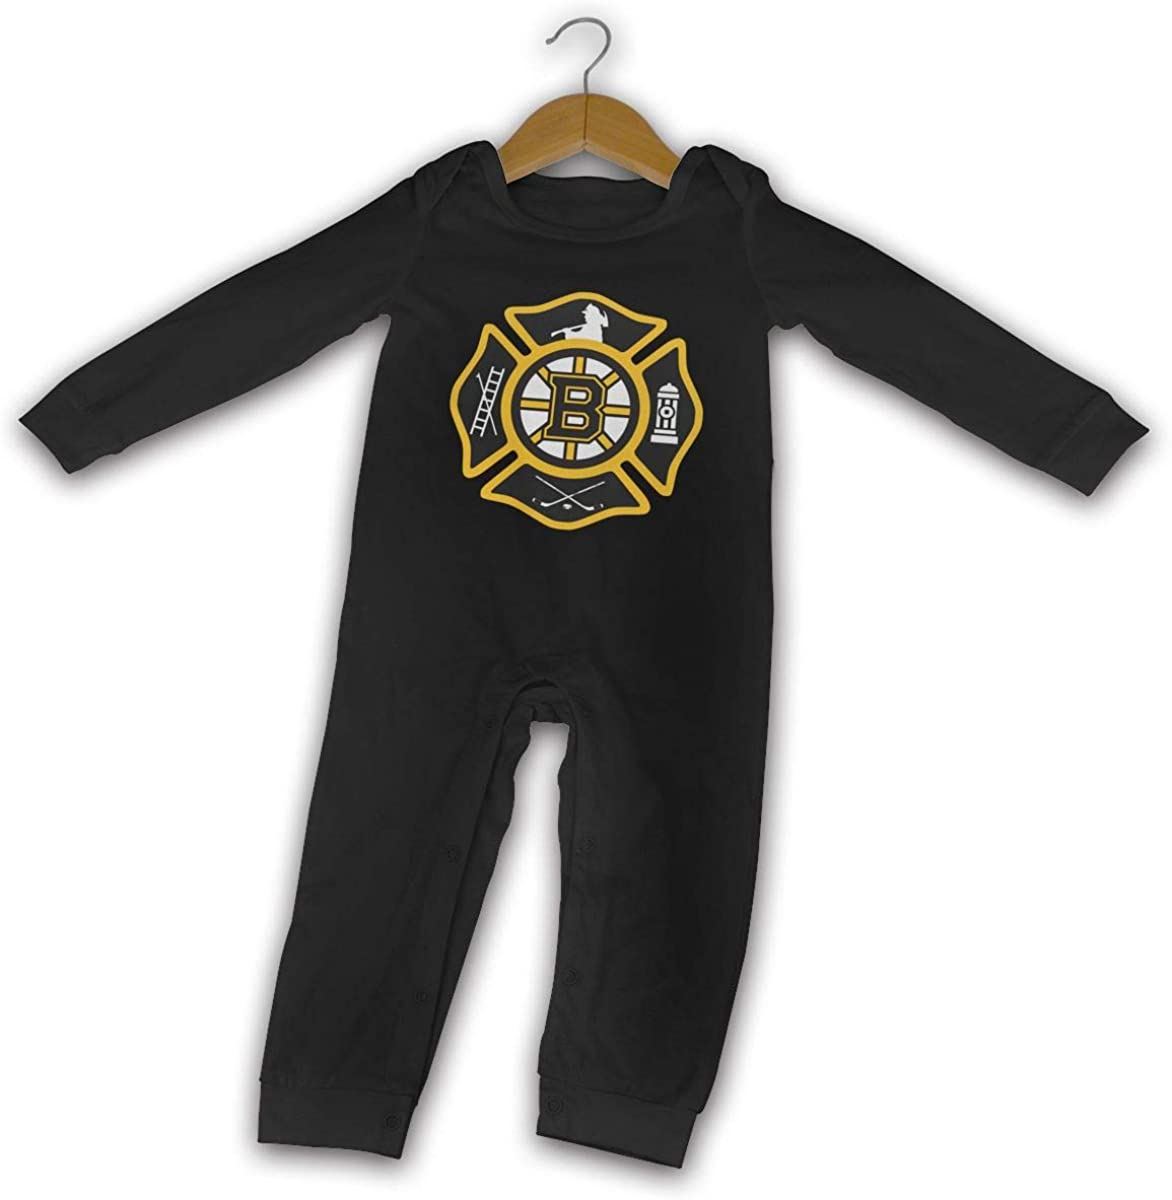 YIRONJERING Bos-ton Fire Bru-ins Style Cotton Baby Long Sleeve Bodysuit